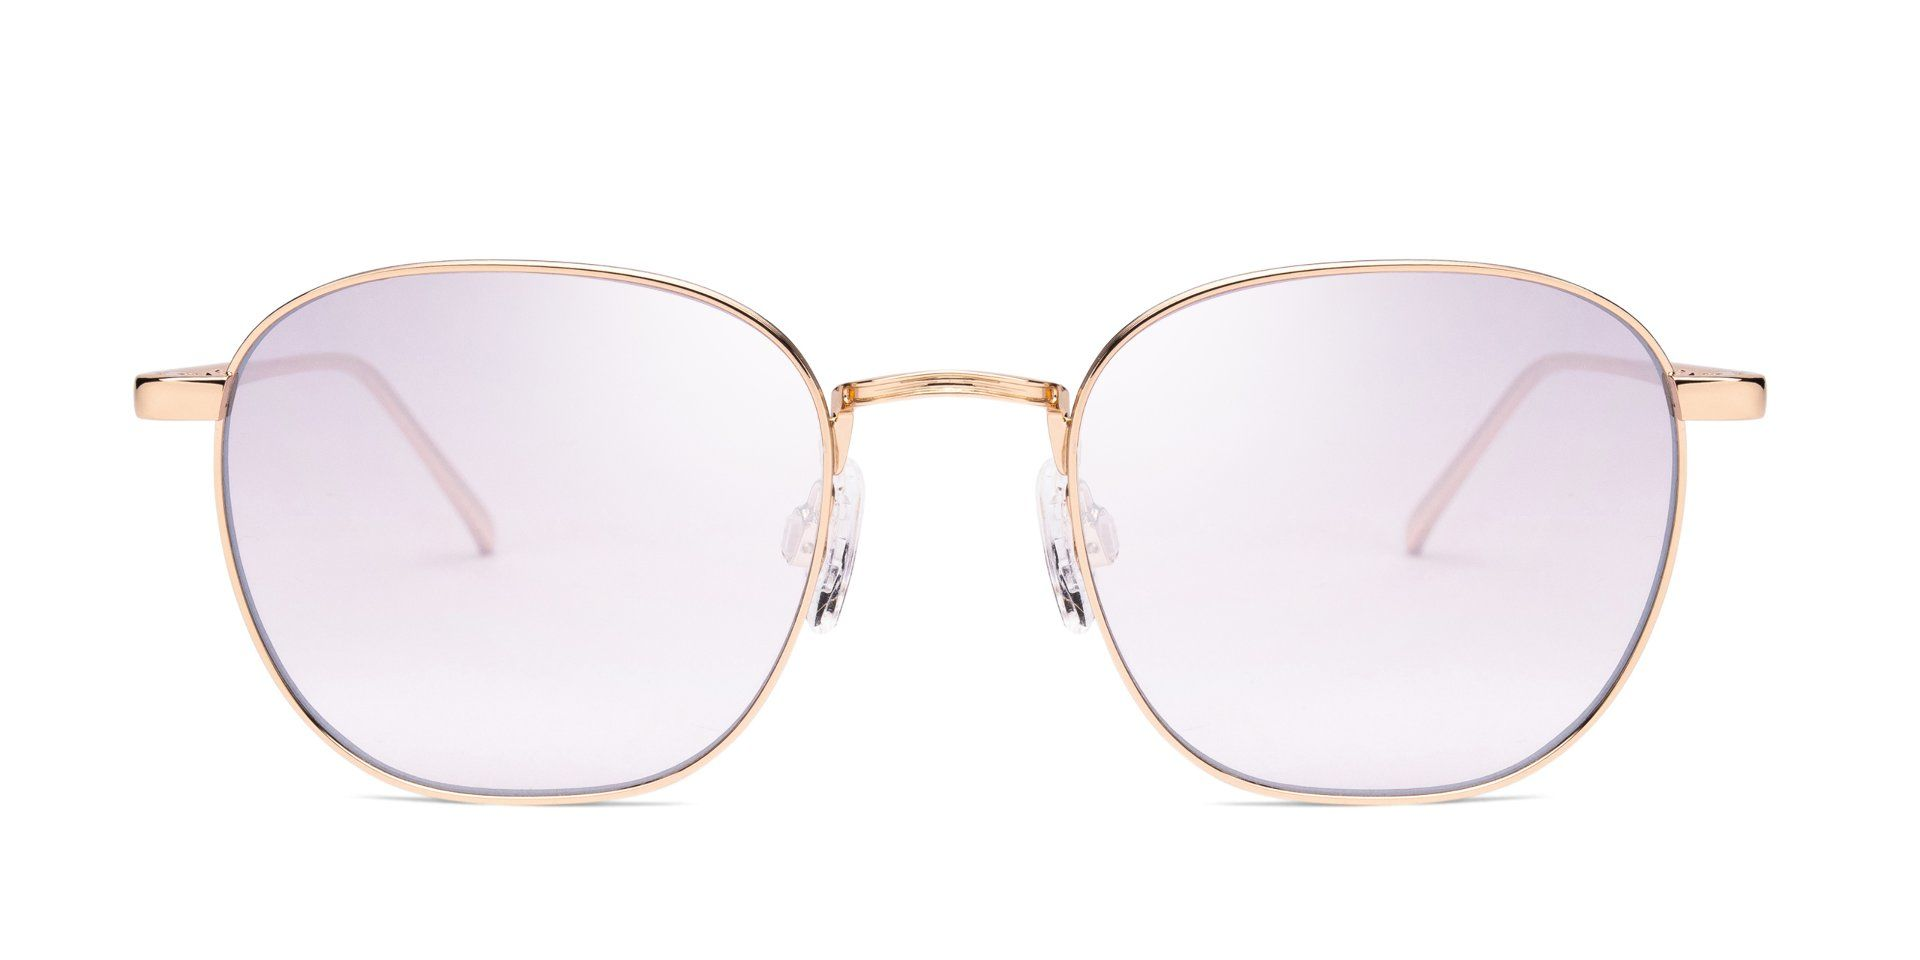 FRAME Shiny Light Gold LENS Gradient Silver Taupe